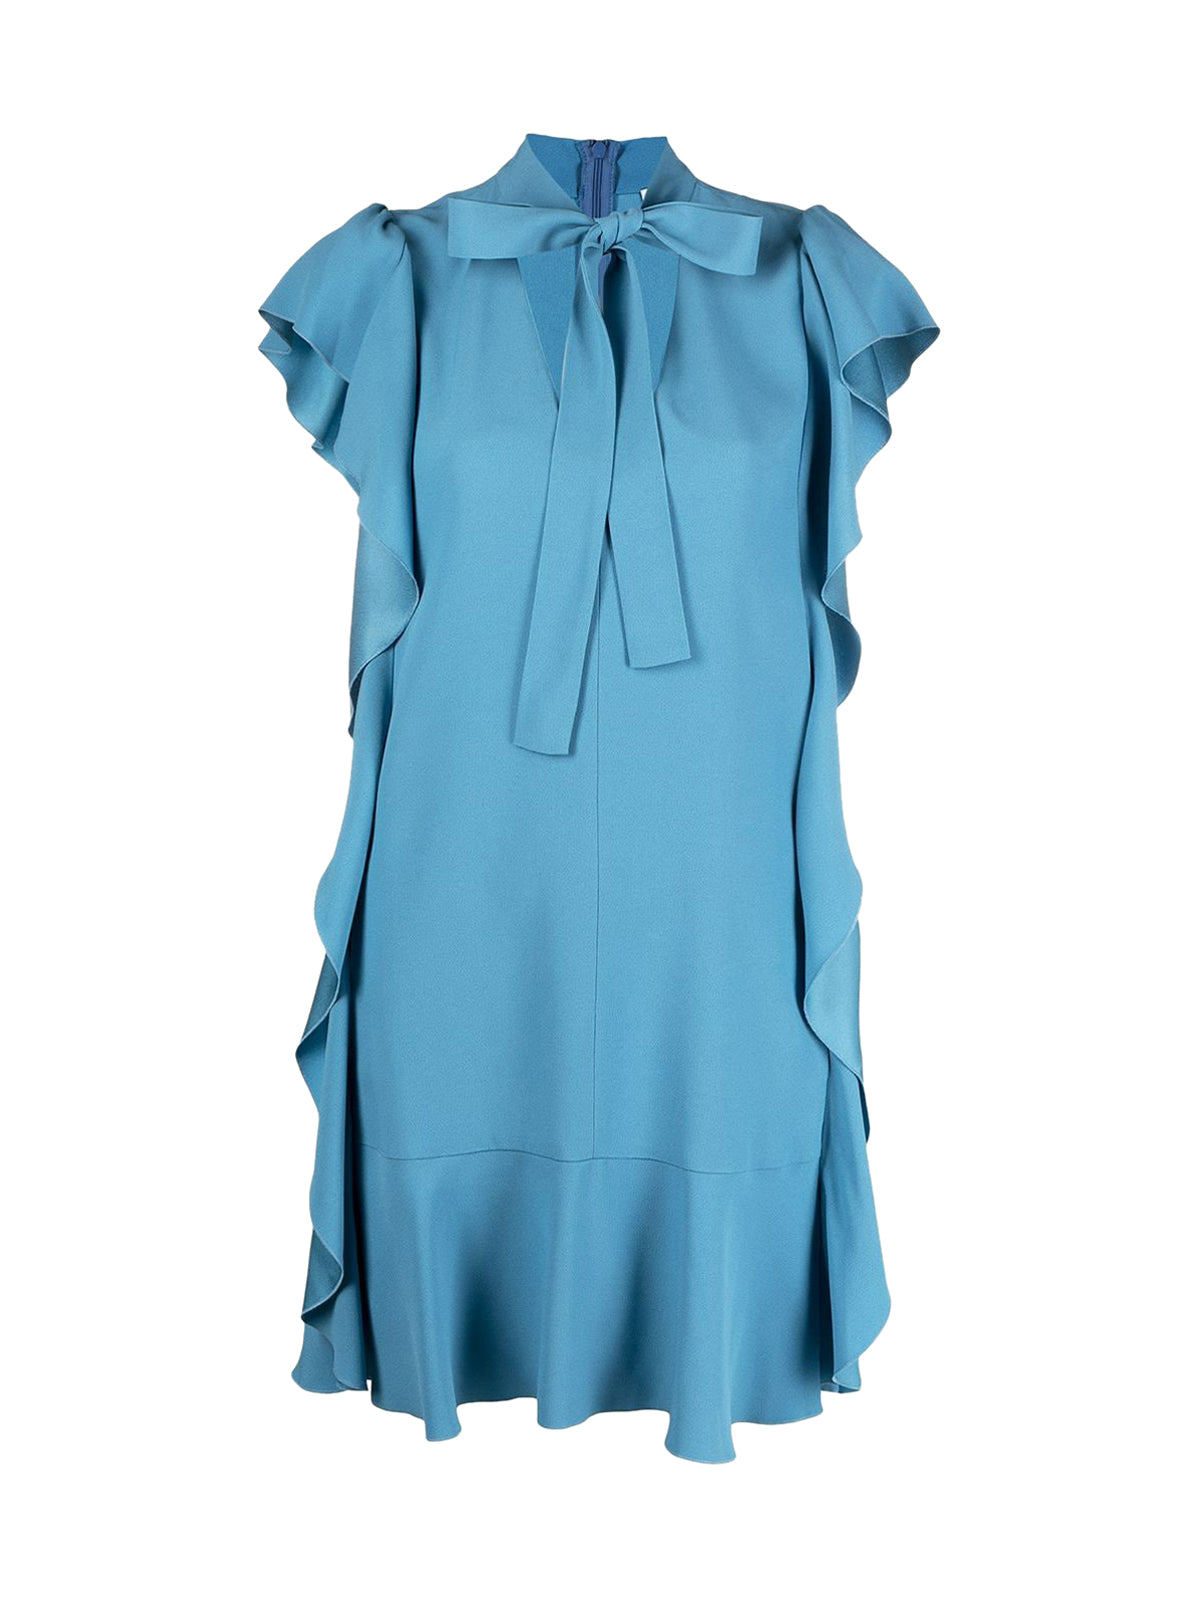 ruffle-trim dress